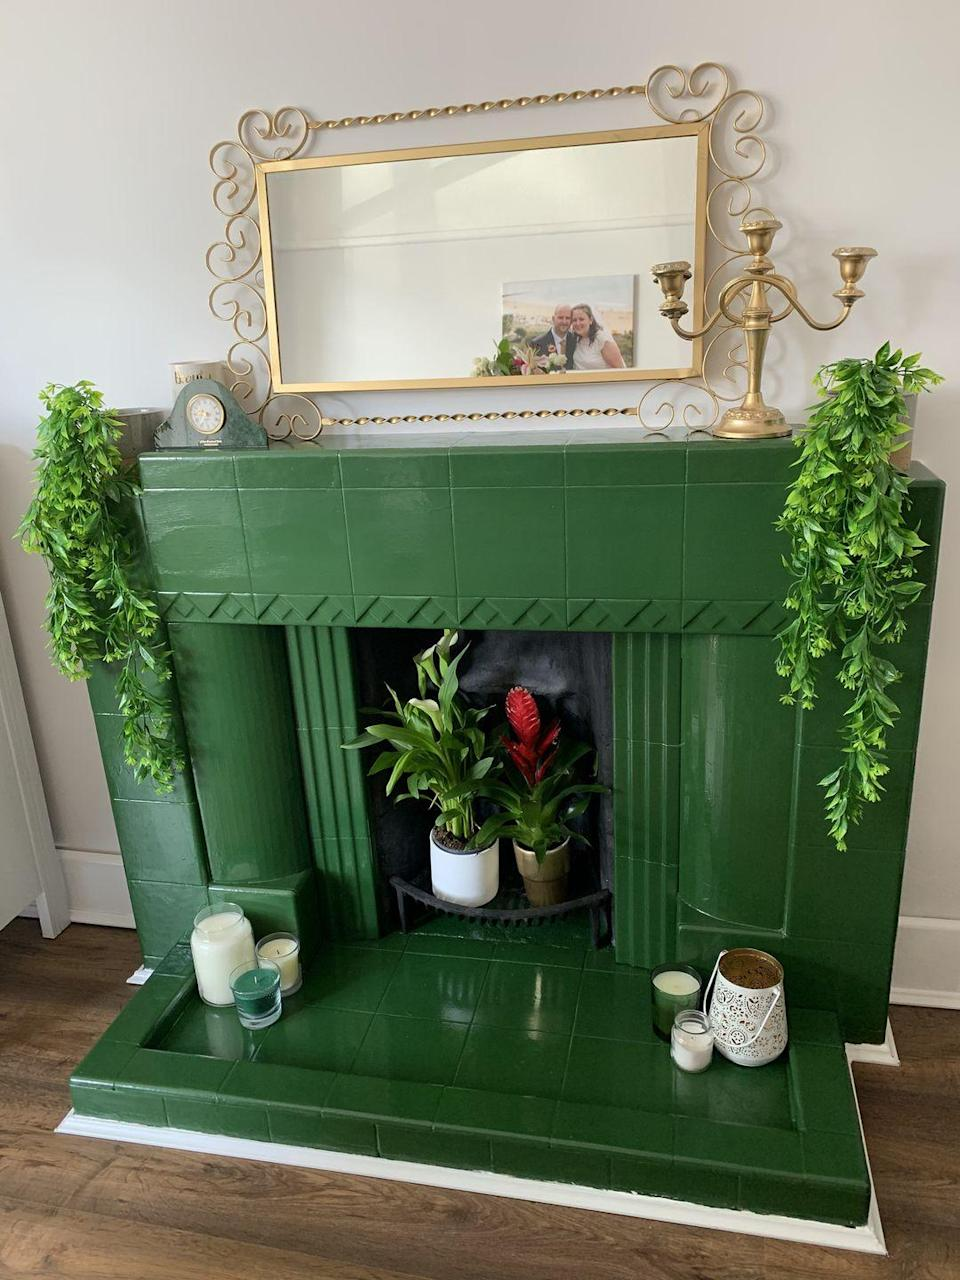 """<p>'Our drab old ceramic fireplace was looking very outdated, but money is tight so getting it knocked out would have cost too much. I therefore bought a tin of <a href=""""https://www.housebeautiful.com/uk/decorate/bathroom/a2255/bathroom-decorating-ideas-greenery/"""" rel=""""nofollow noopener"""" target=""""_blank"""" data-ylk=""""slk:green"""" class=""""link rapid-noclick-resp"""">green</a> paint - my favourite colour!'</p>"""